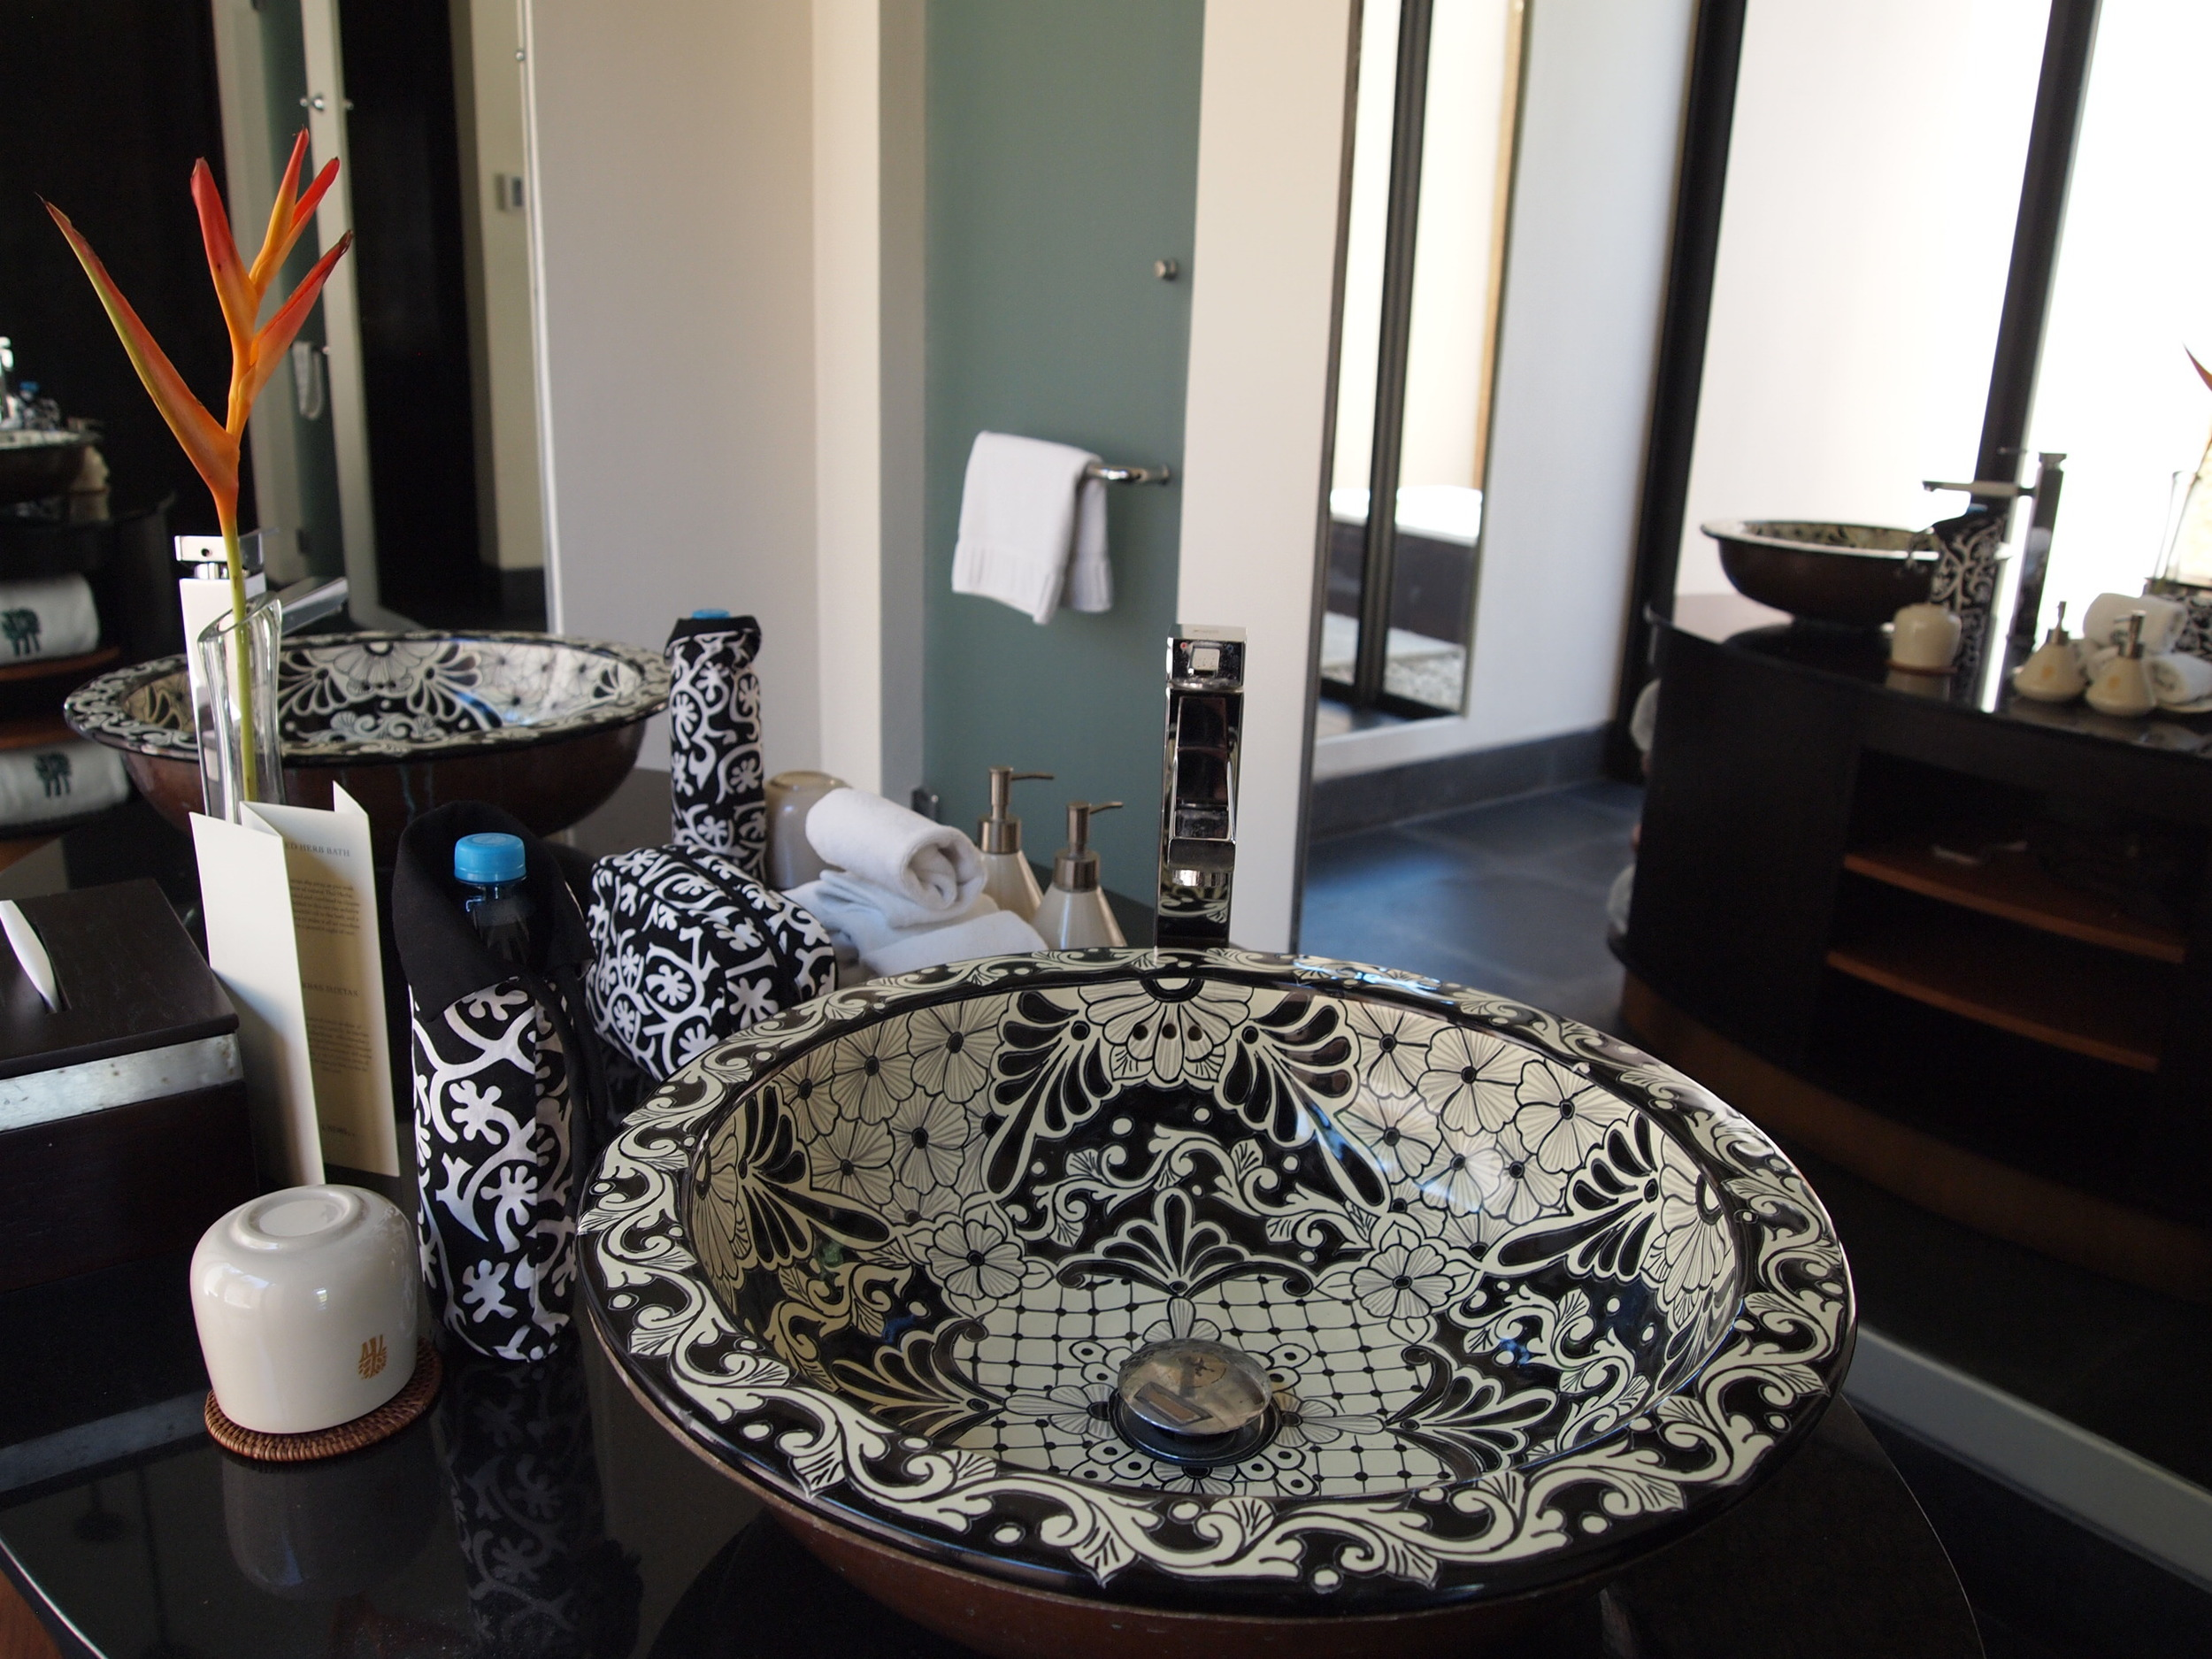 The apartment-sized bathroom with Mexi-gorgeous earthenware sinks